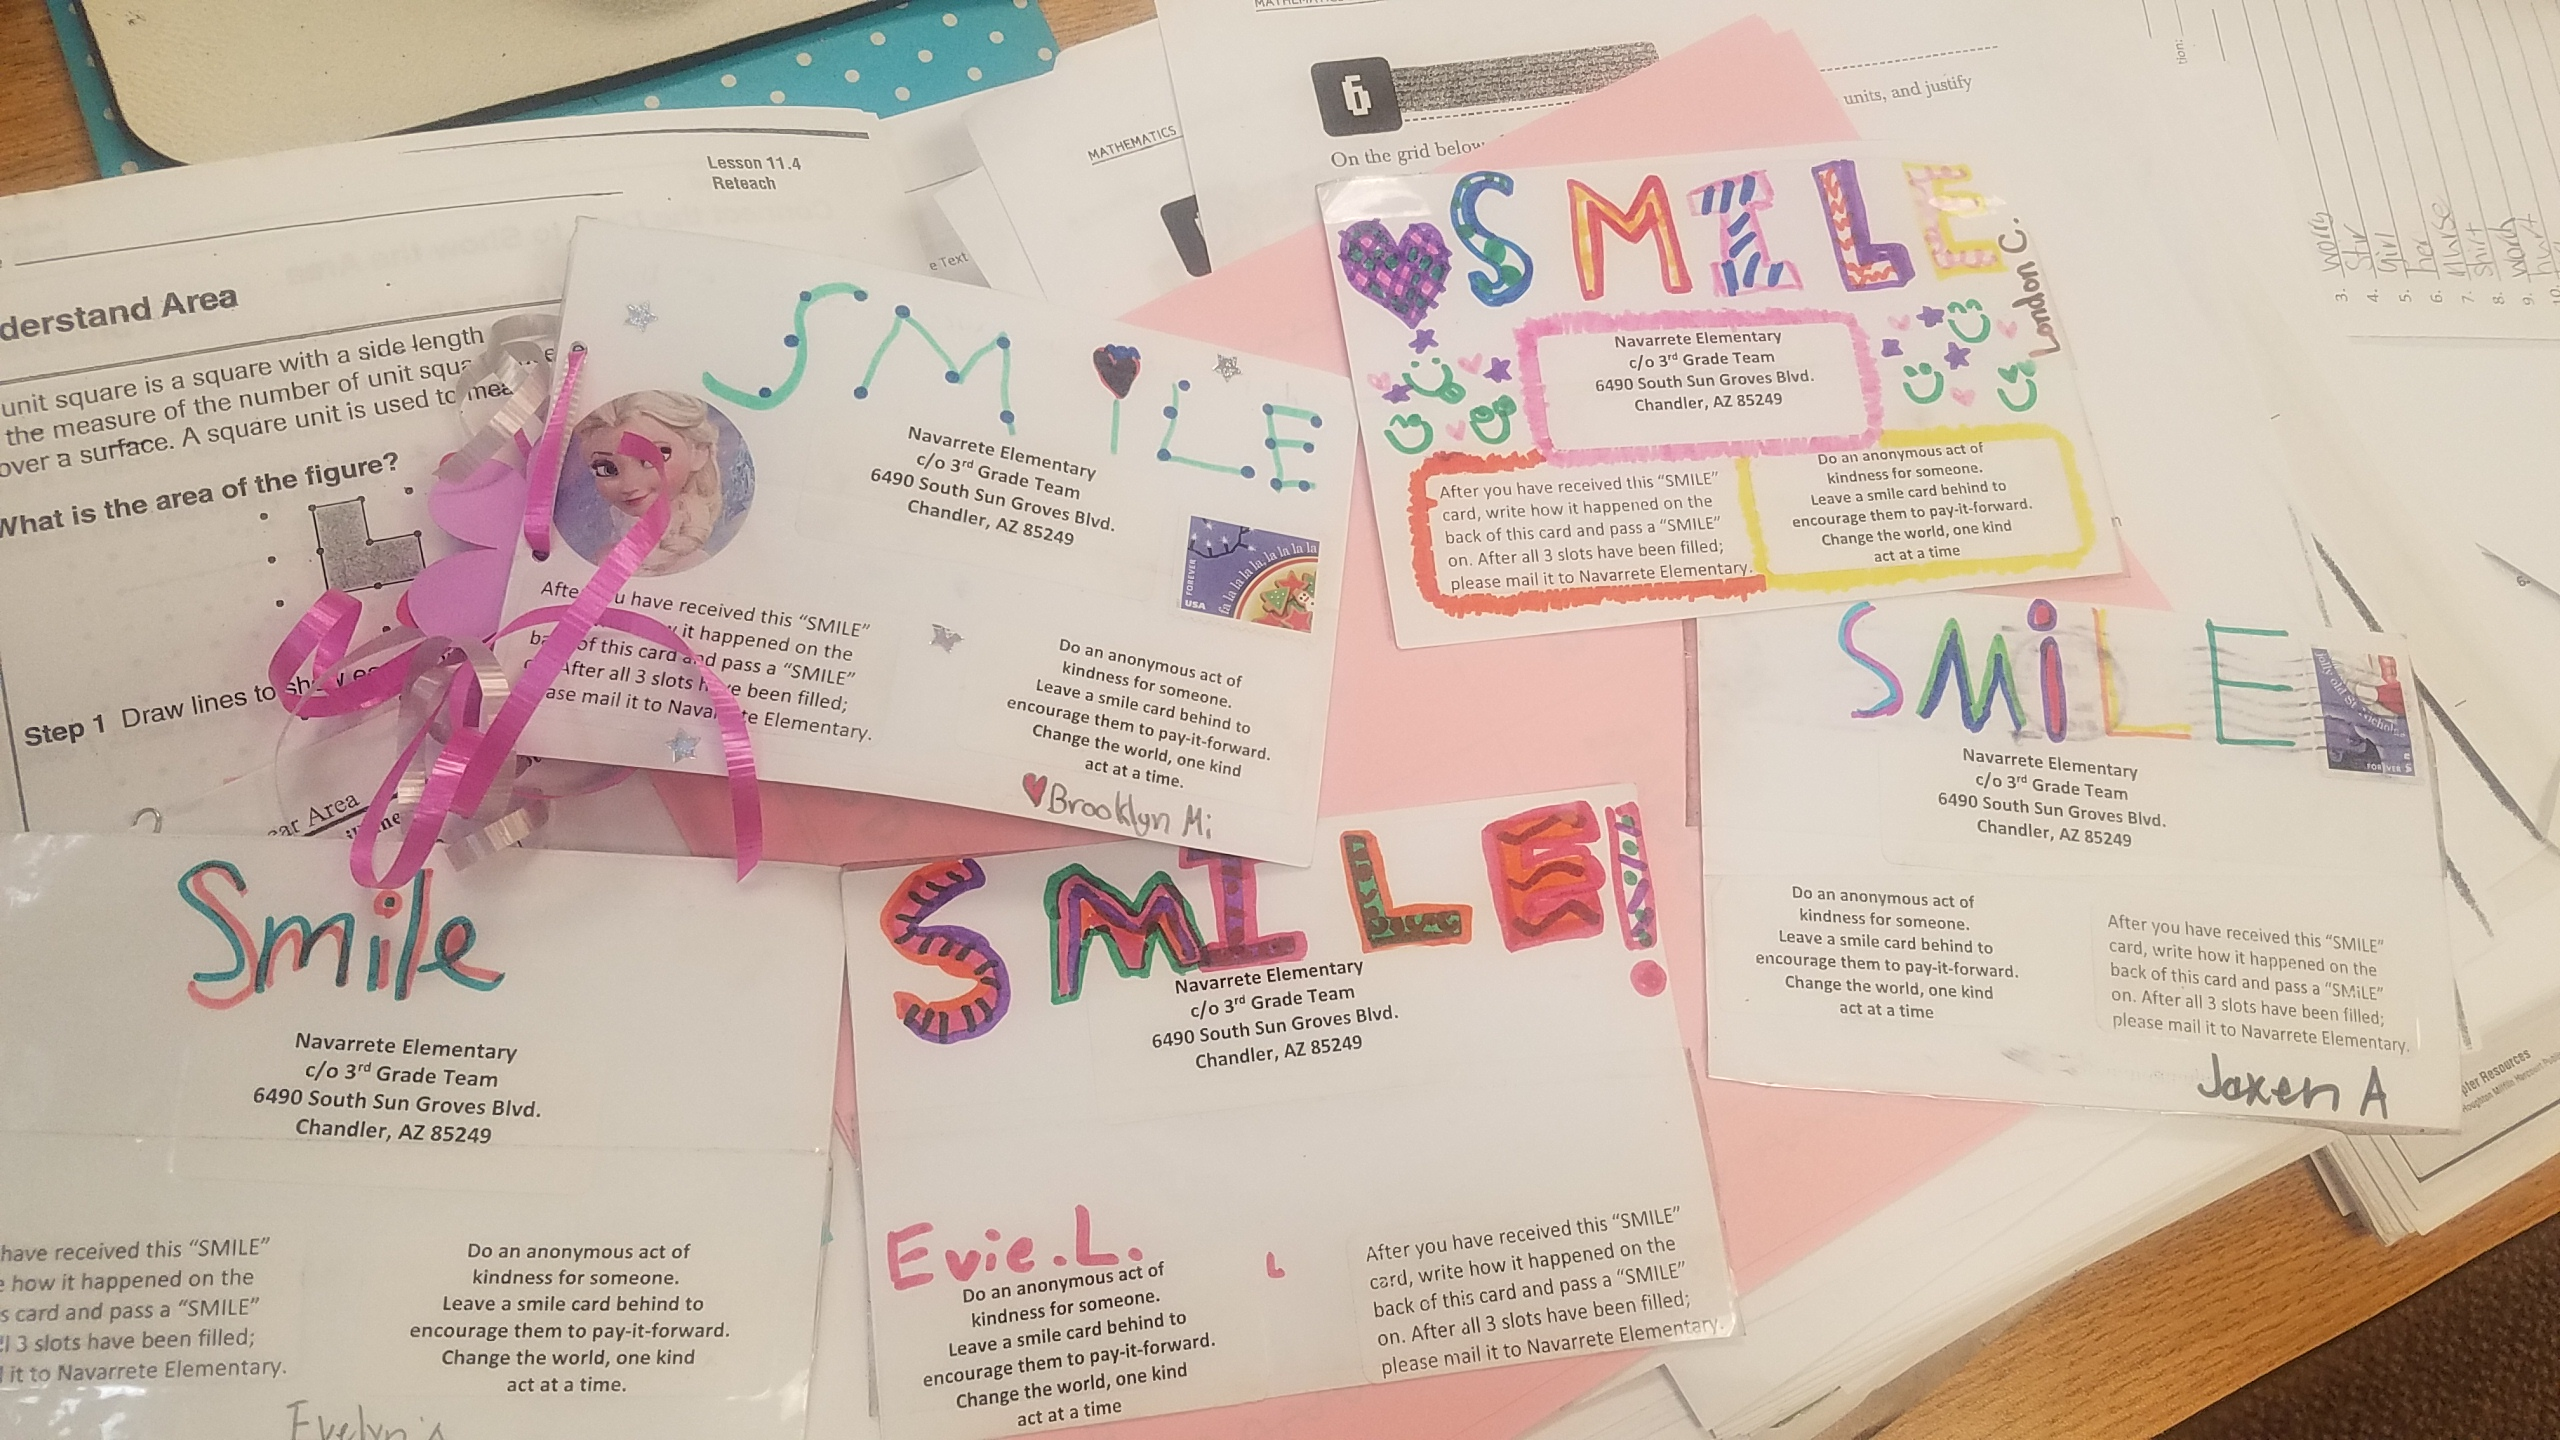 Smile Cards Made By Third-graders At Navarrete Elementary School In Chandler. Photo Courtesy Chandler Unified School District